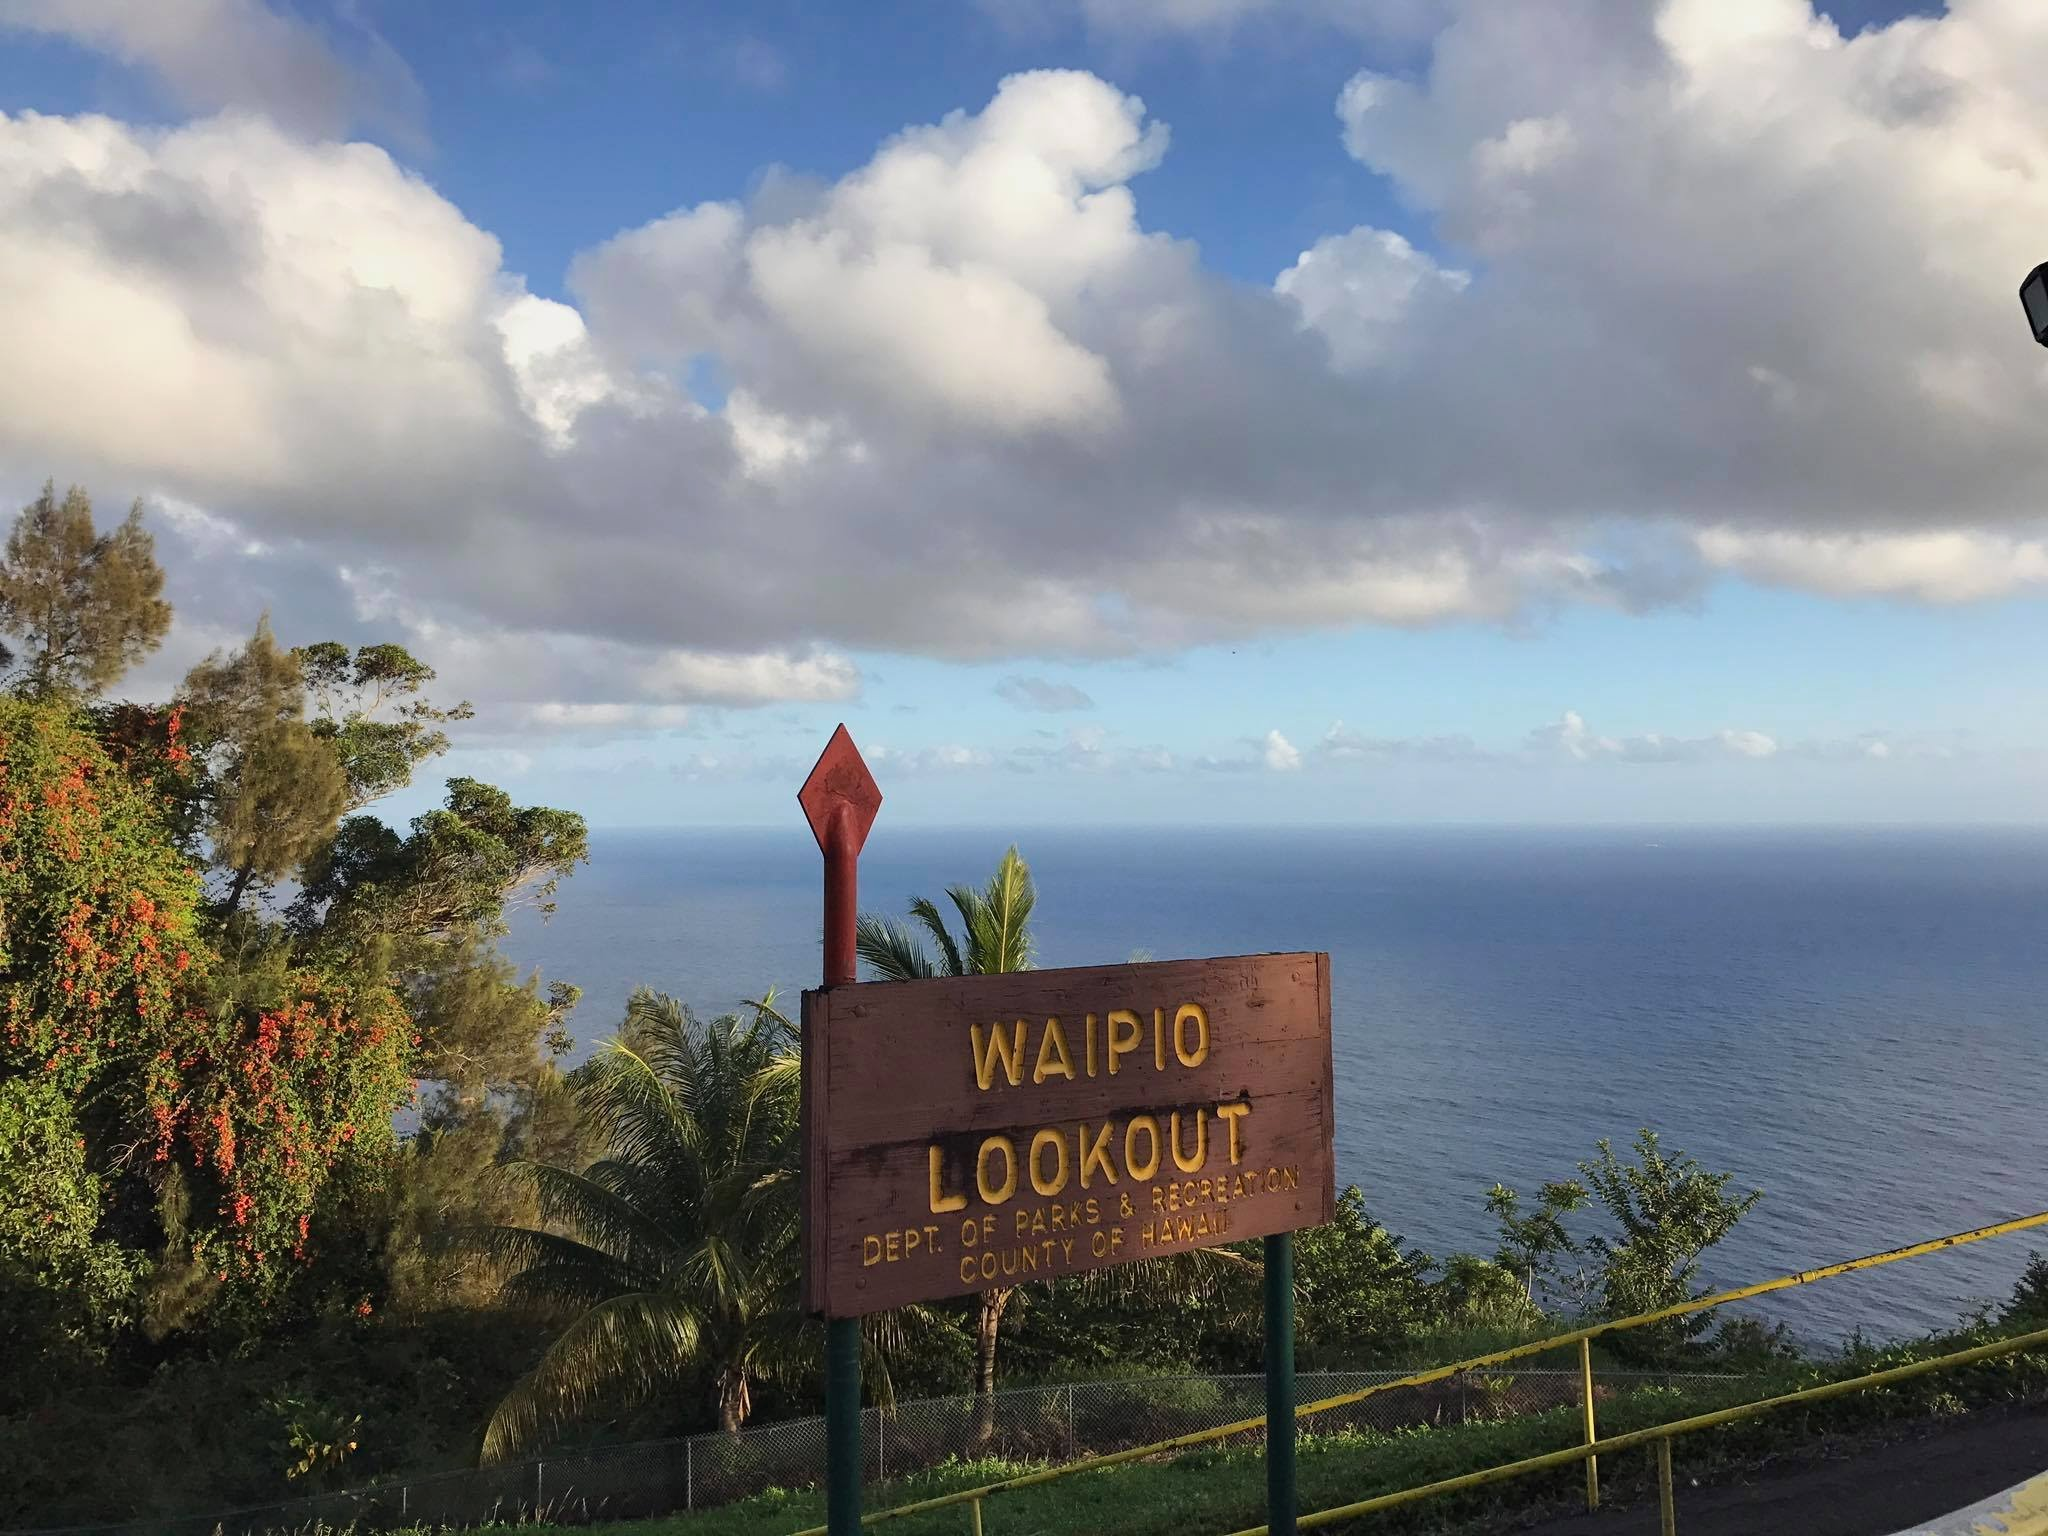 Sign and view of Waipio Valley